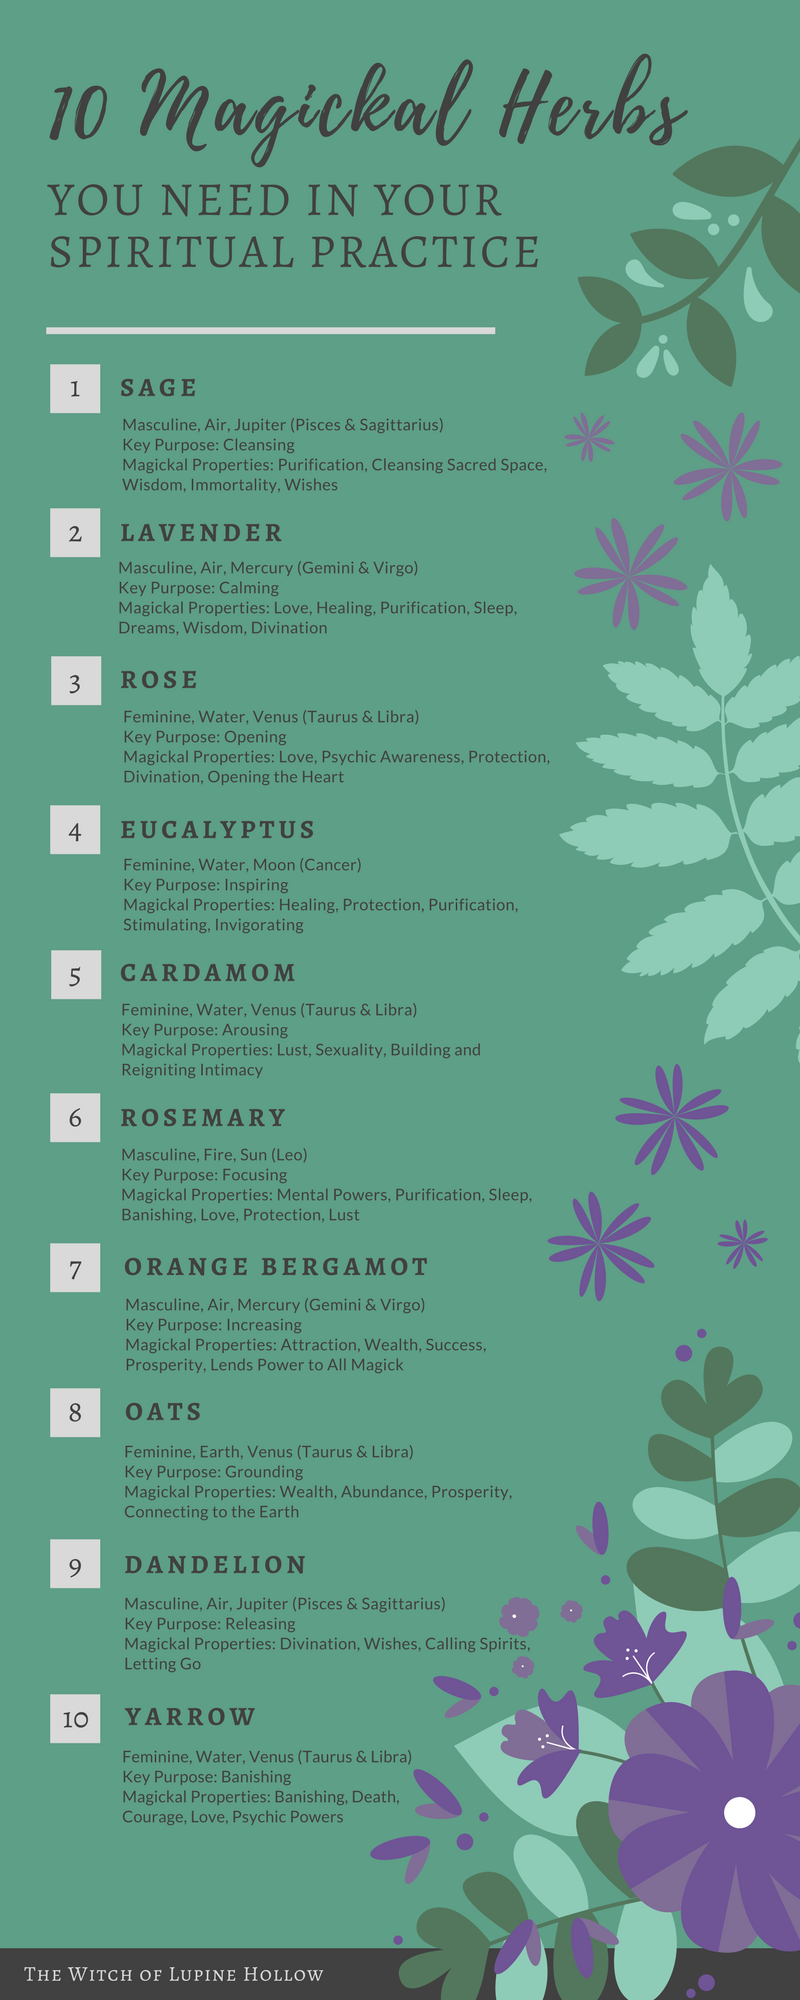 10 Magickal Herbs You Need In Your Practice - essential herbs and flowers for witchcraft